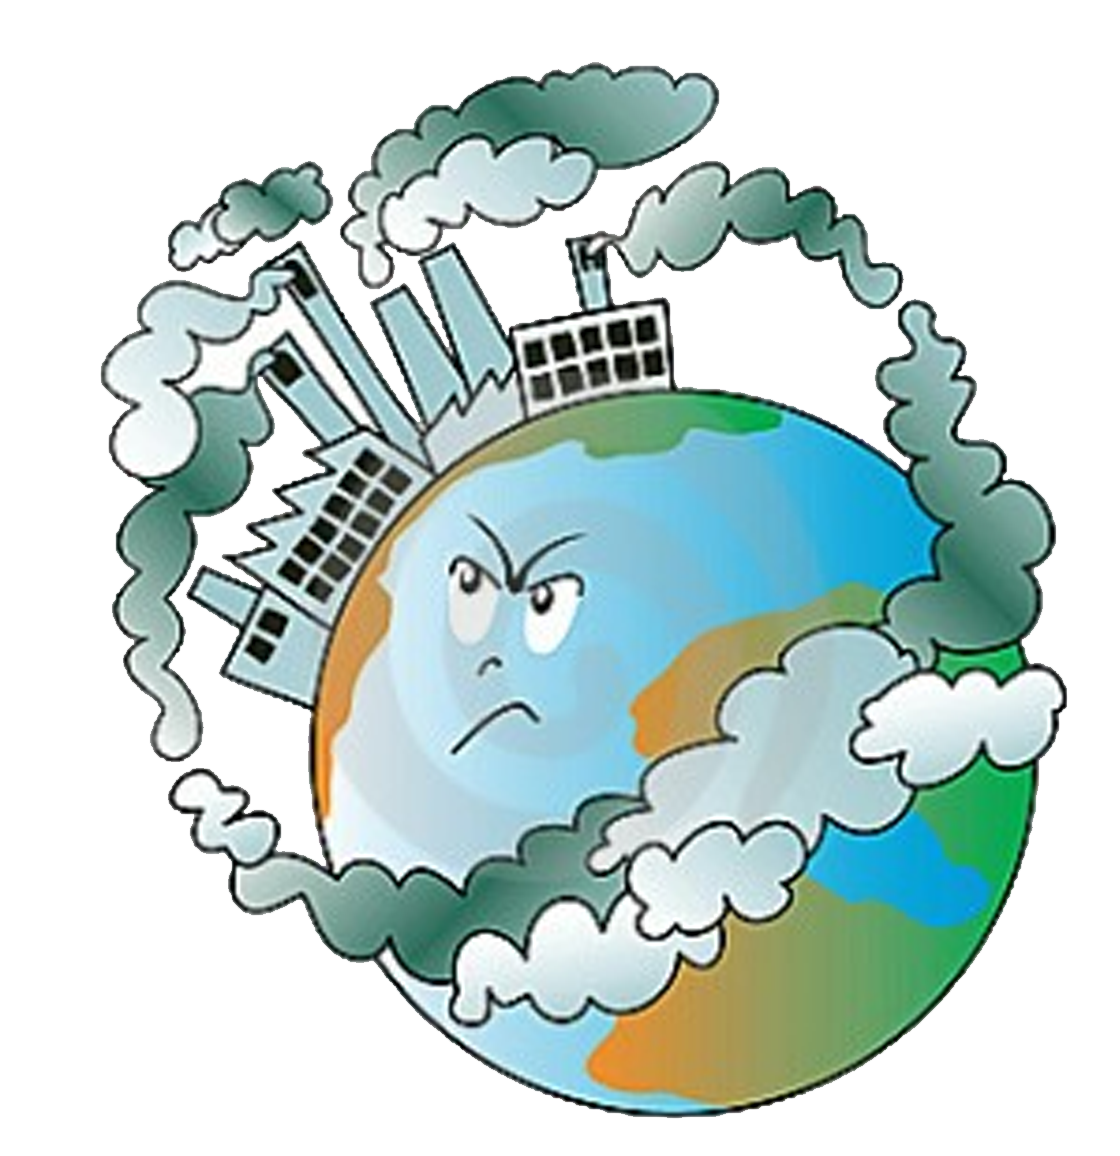 Air pollution soil contamination. Water clipart polluted